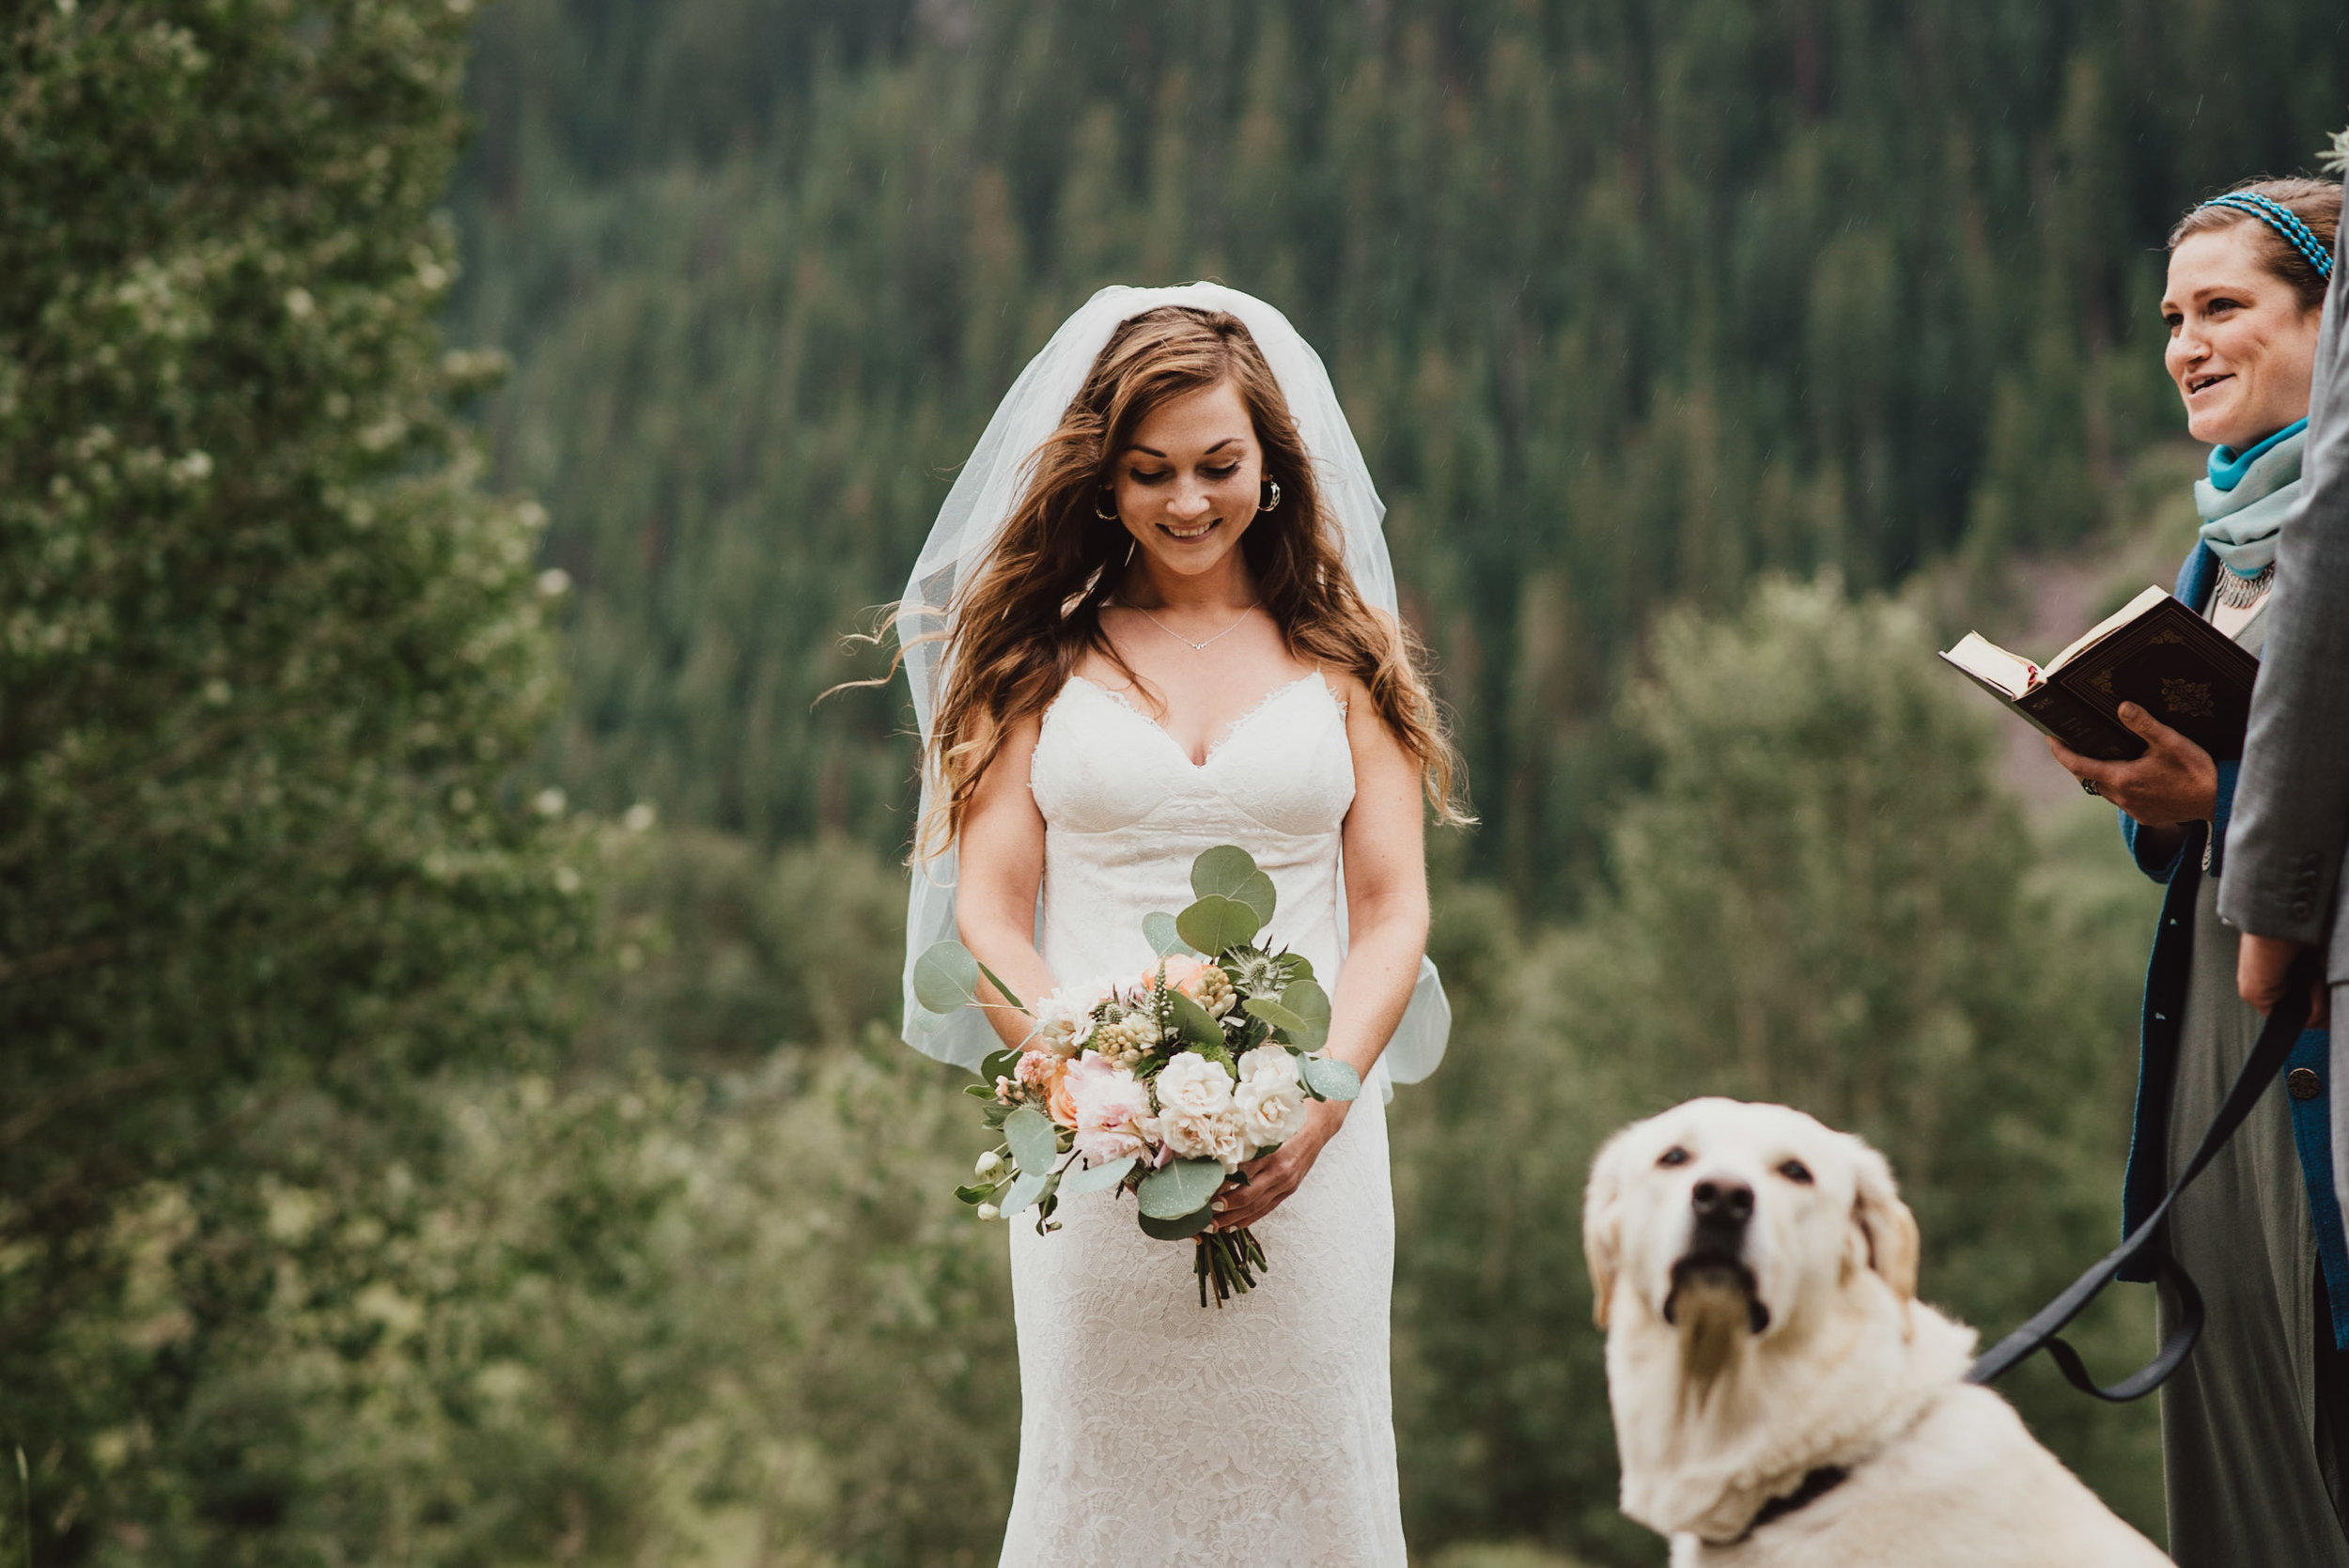 Heather during their wedding vows at the Maroon Bells.